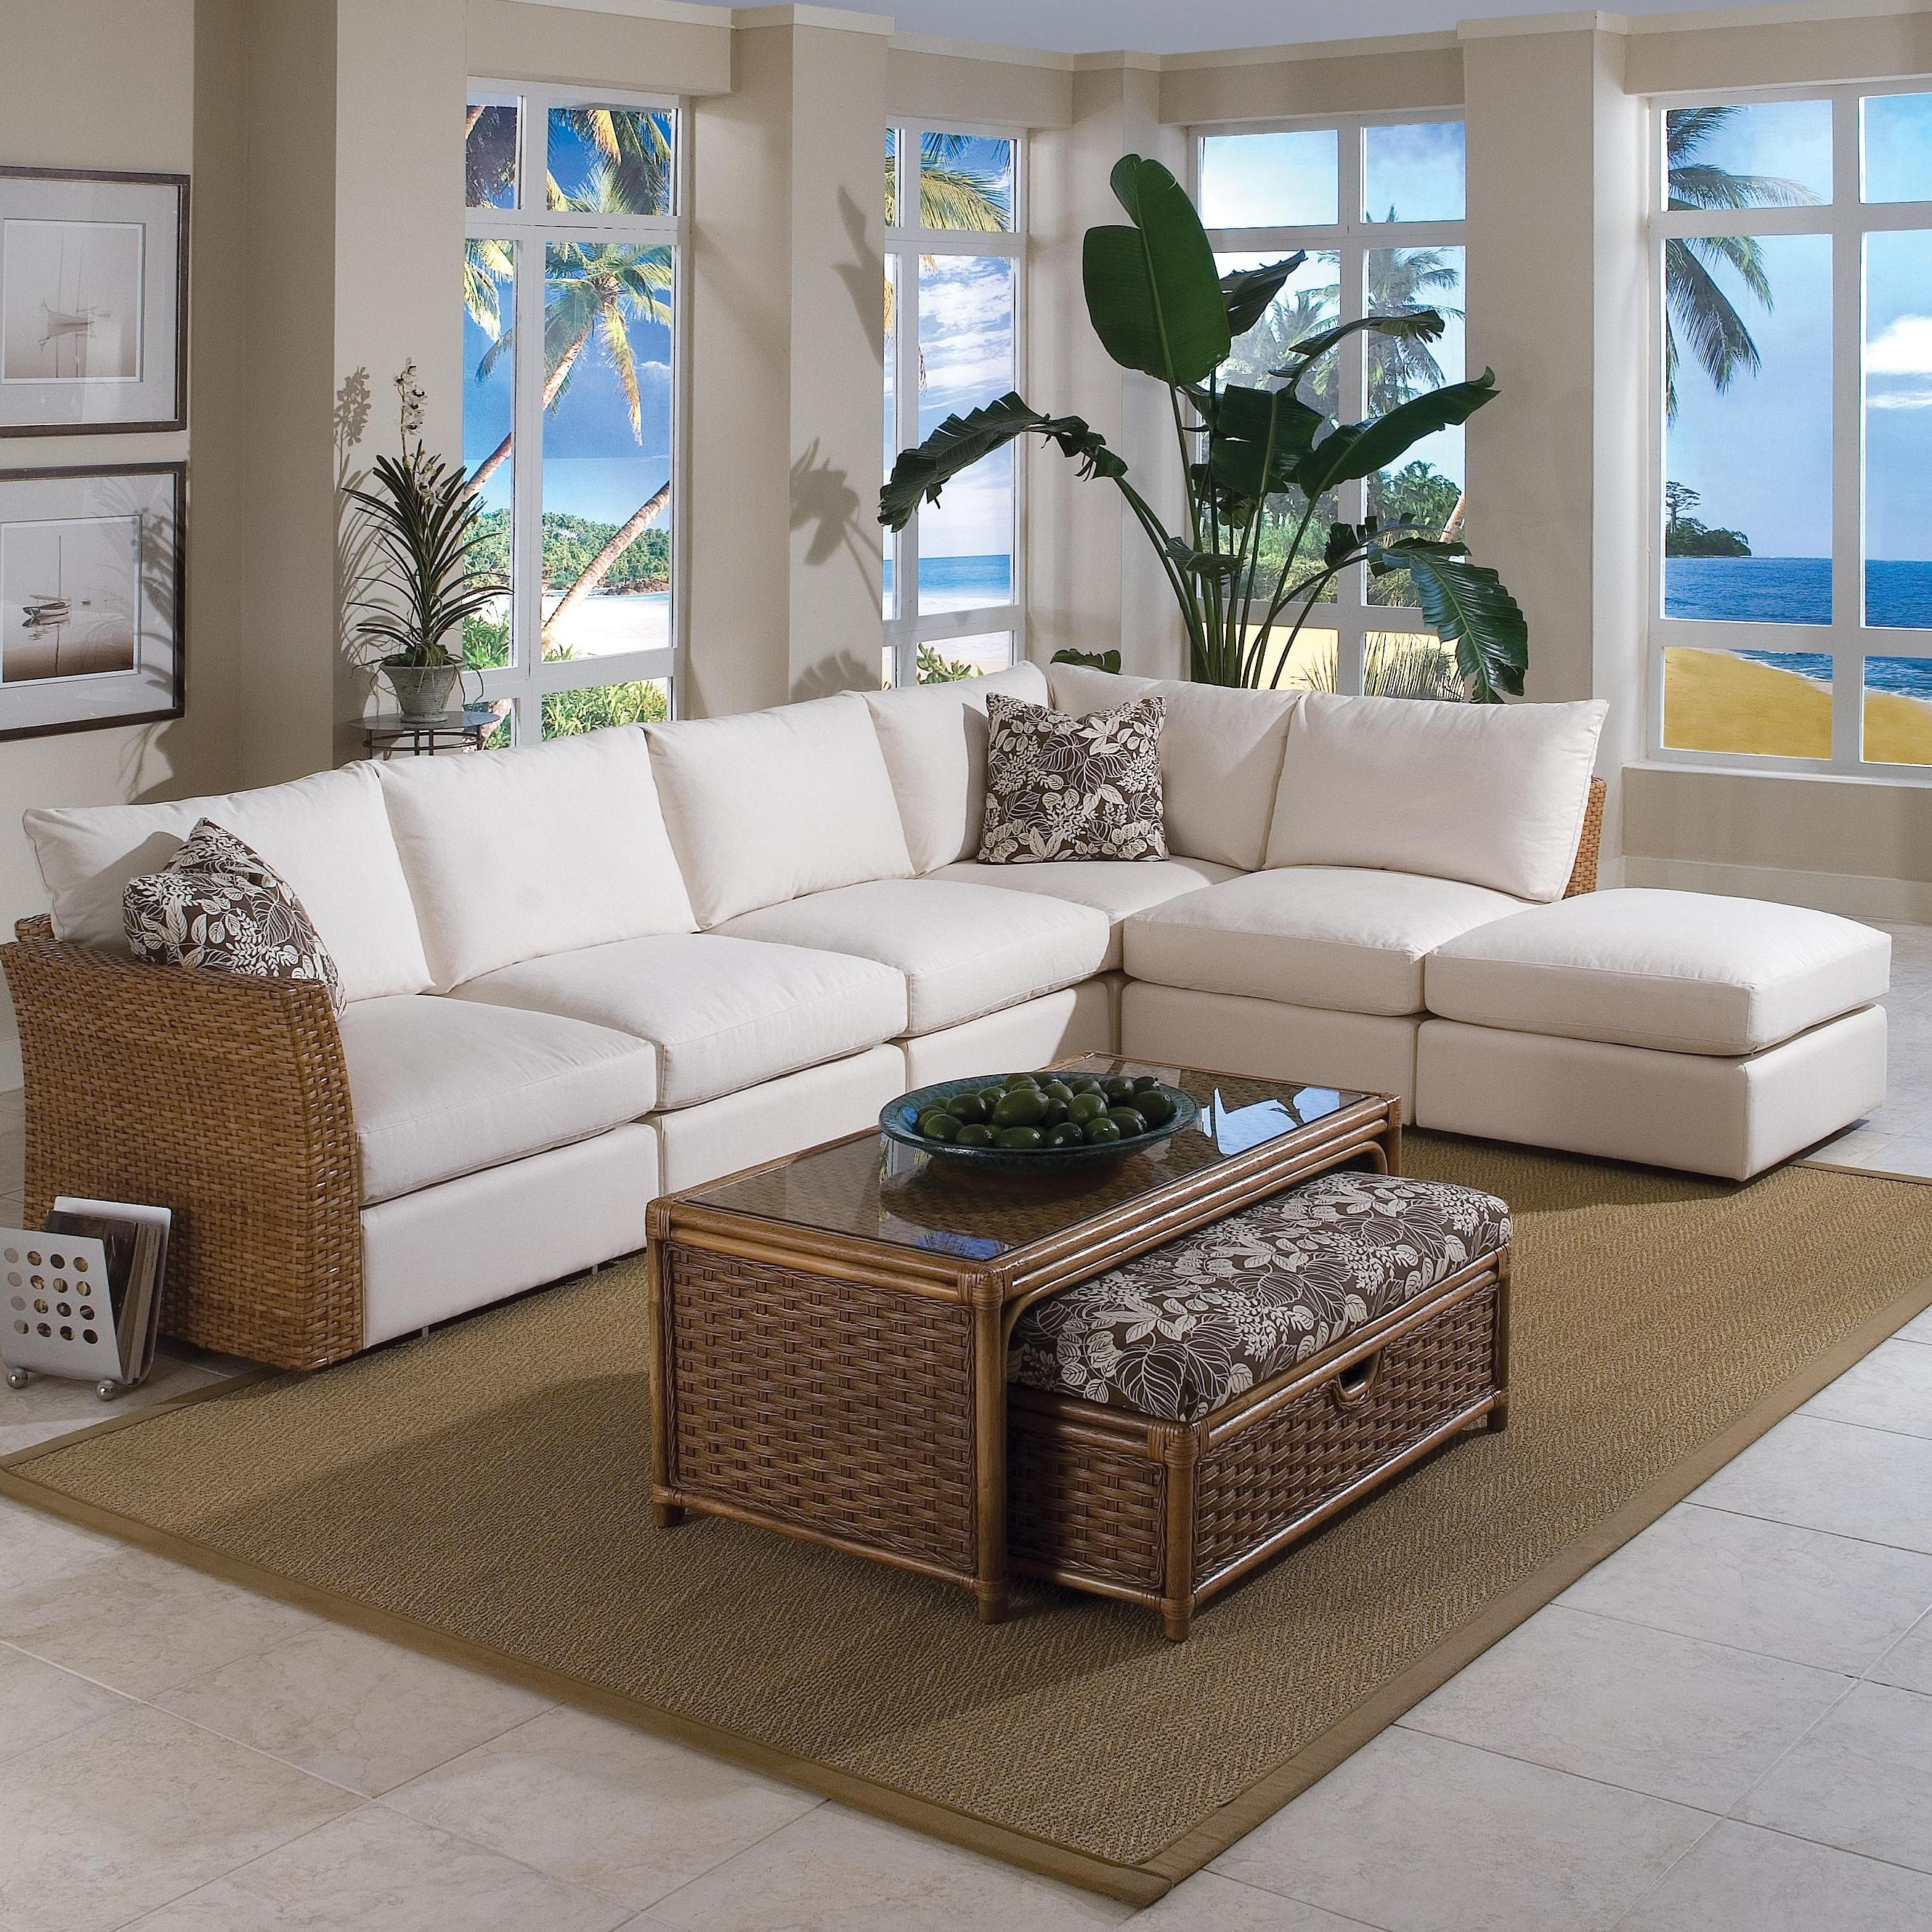 Havertys Sectional Sofas Within Well Liked Braxton Culler Grand Water Point Tropical Sectional Sofa With Two (View 10 of 20)